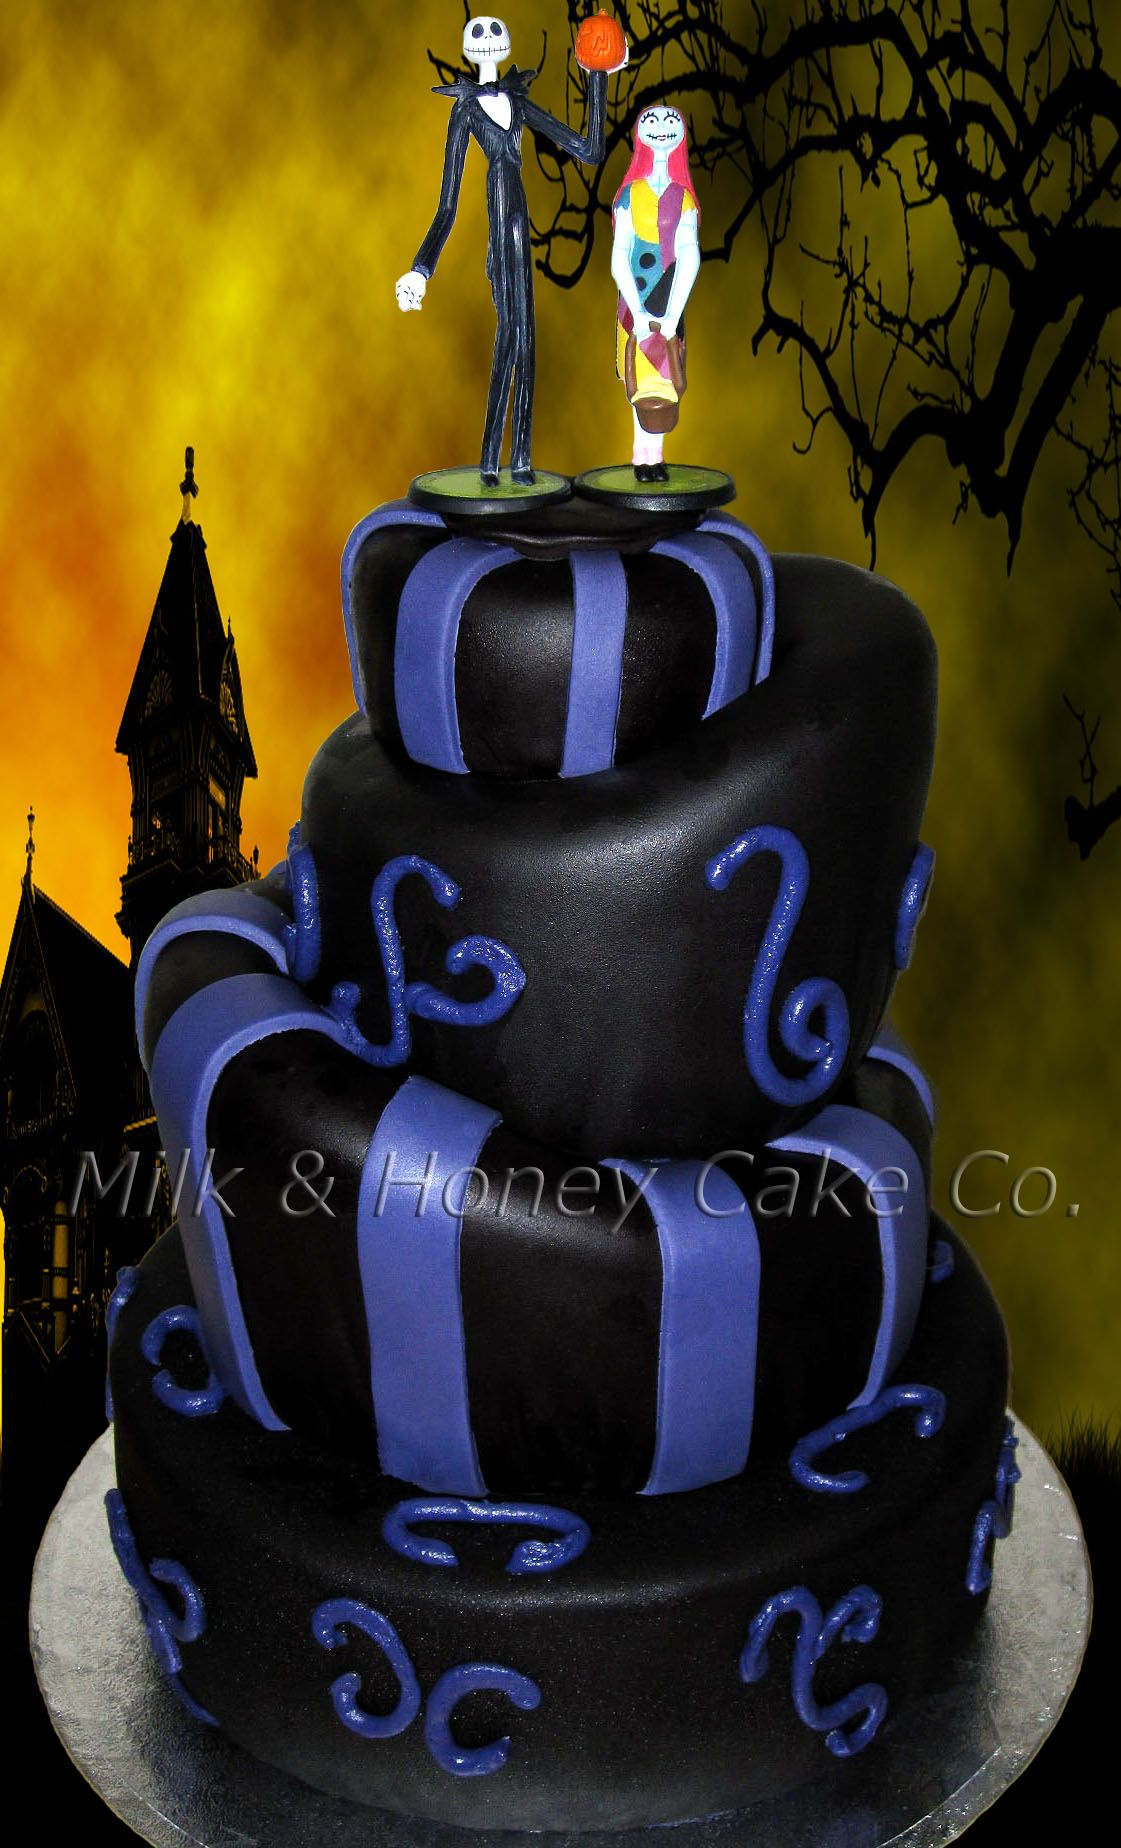 Topsy Turvy (Mad Hatter) style round black and purple wedding cake ...